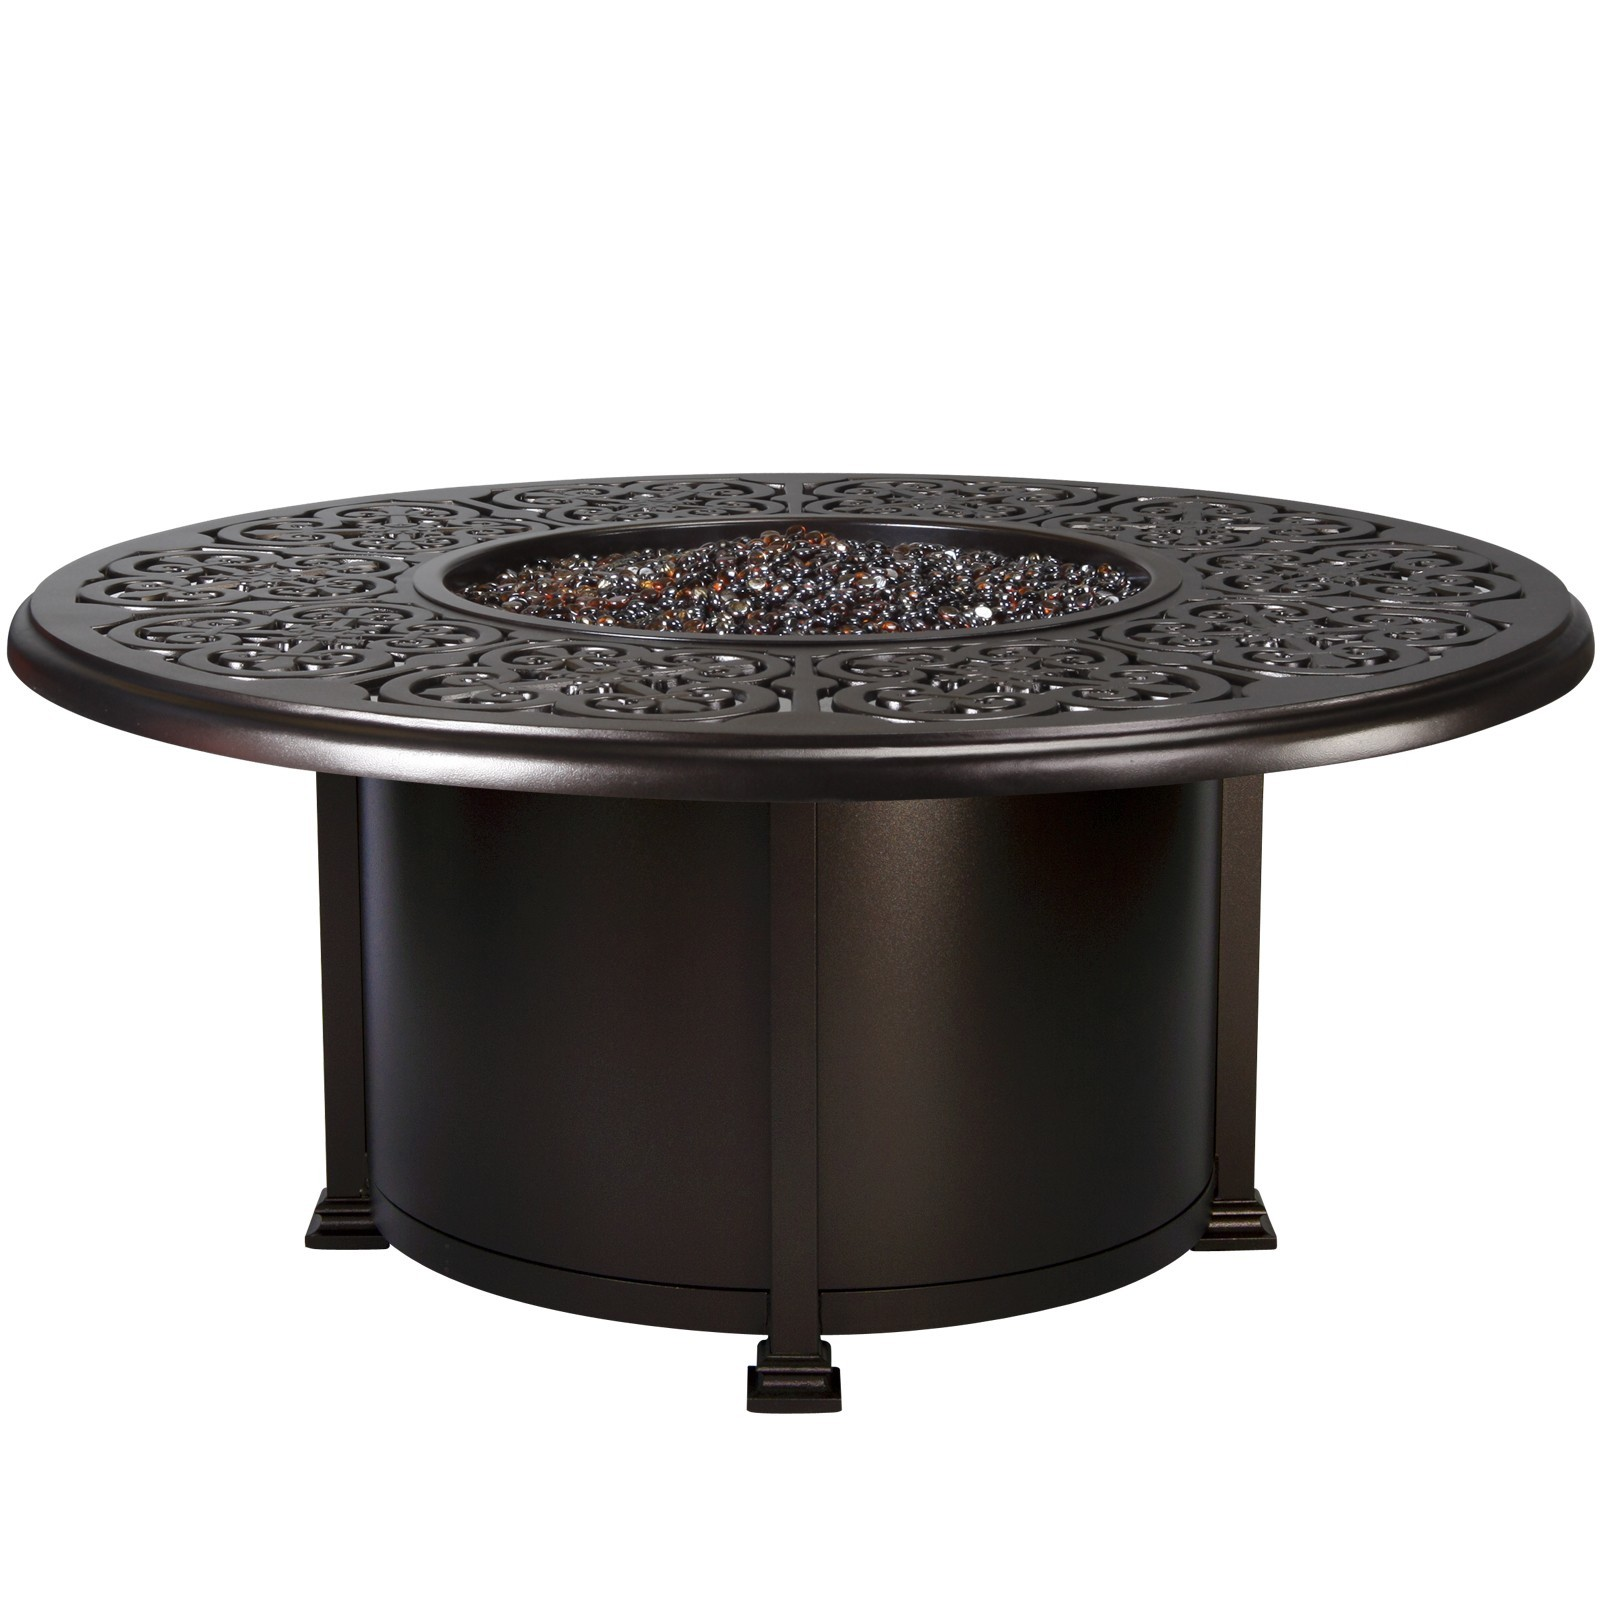 "Fire Pits 54"" Round Chat Height Fire Pit"